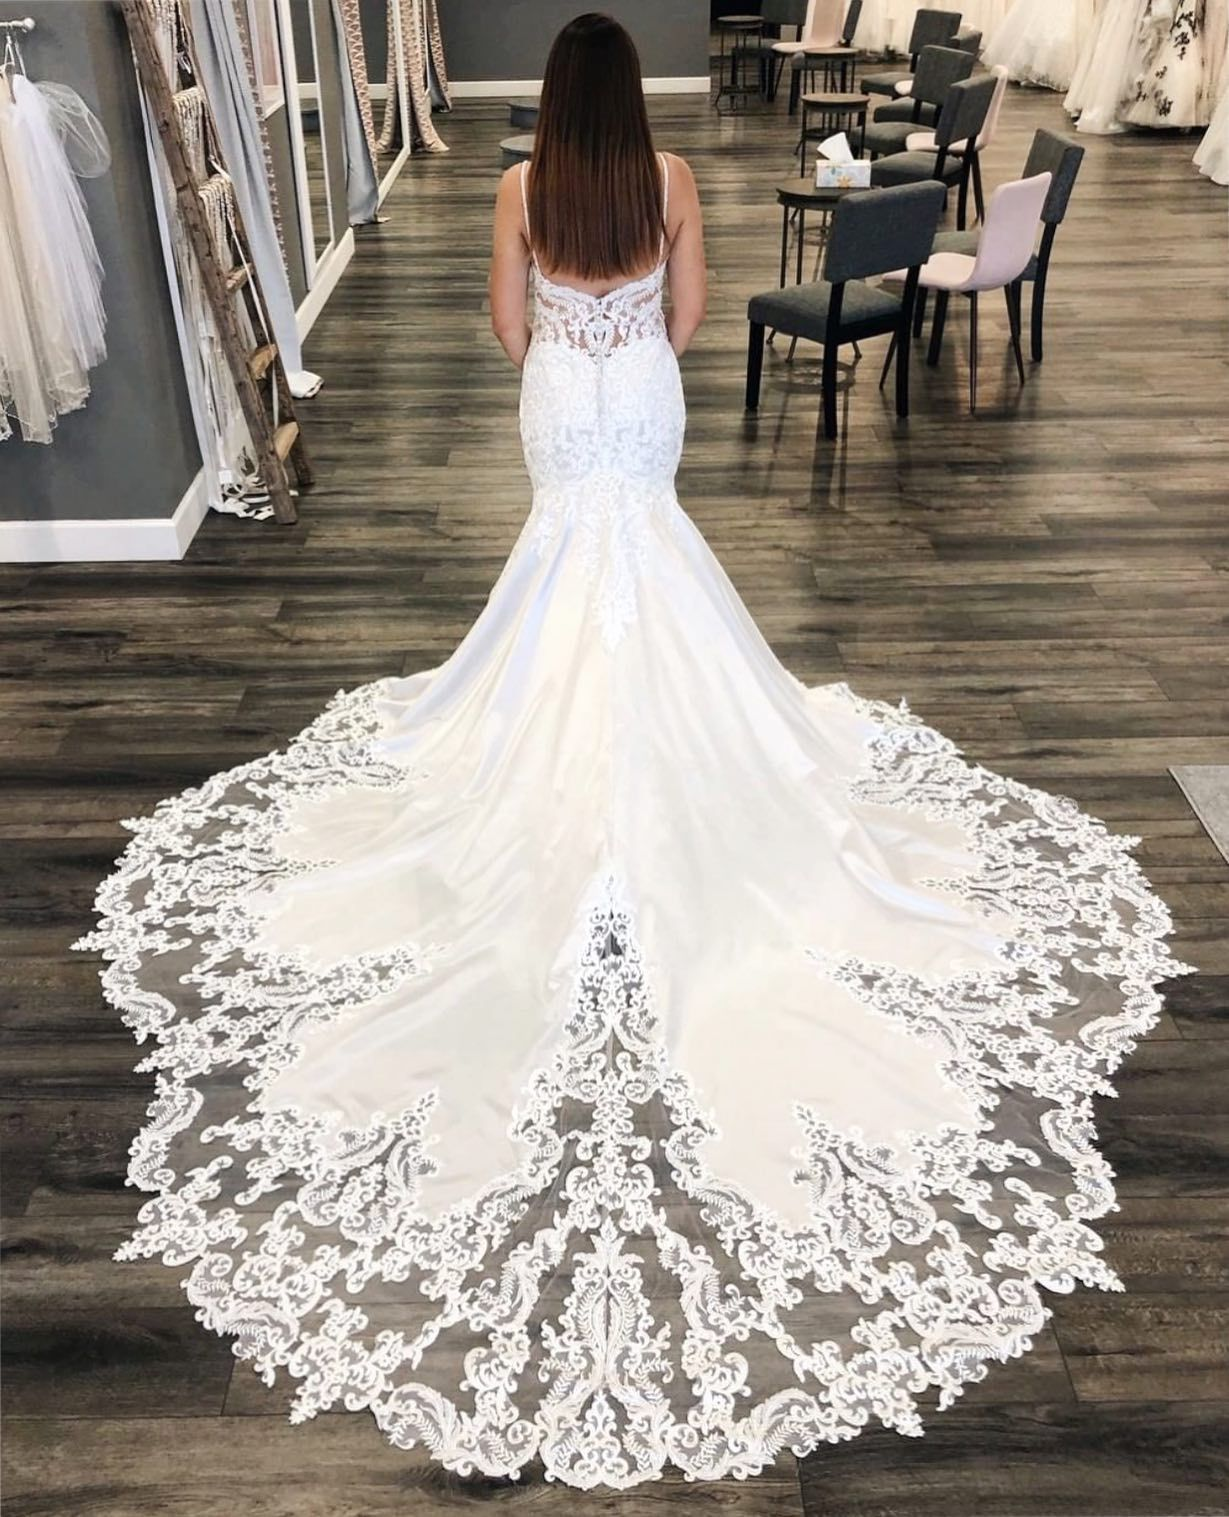 Mermaid Wedding Dress With Long Train Morilee Style 2121 In 2021 Size 12 Wedding Dress Formal Dresses For Weddings Wedding Dresses [ 1517 x 1229 Pixel ]